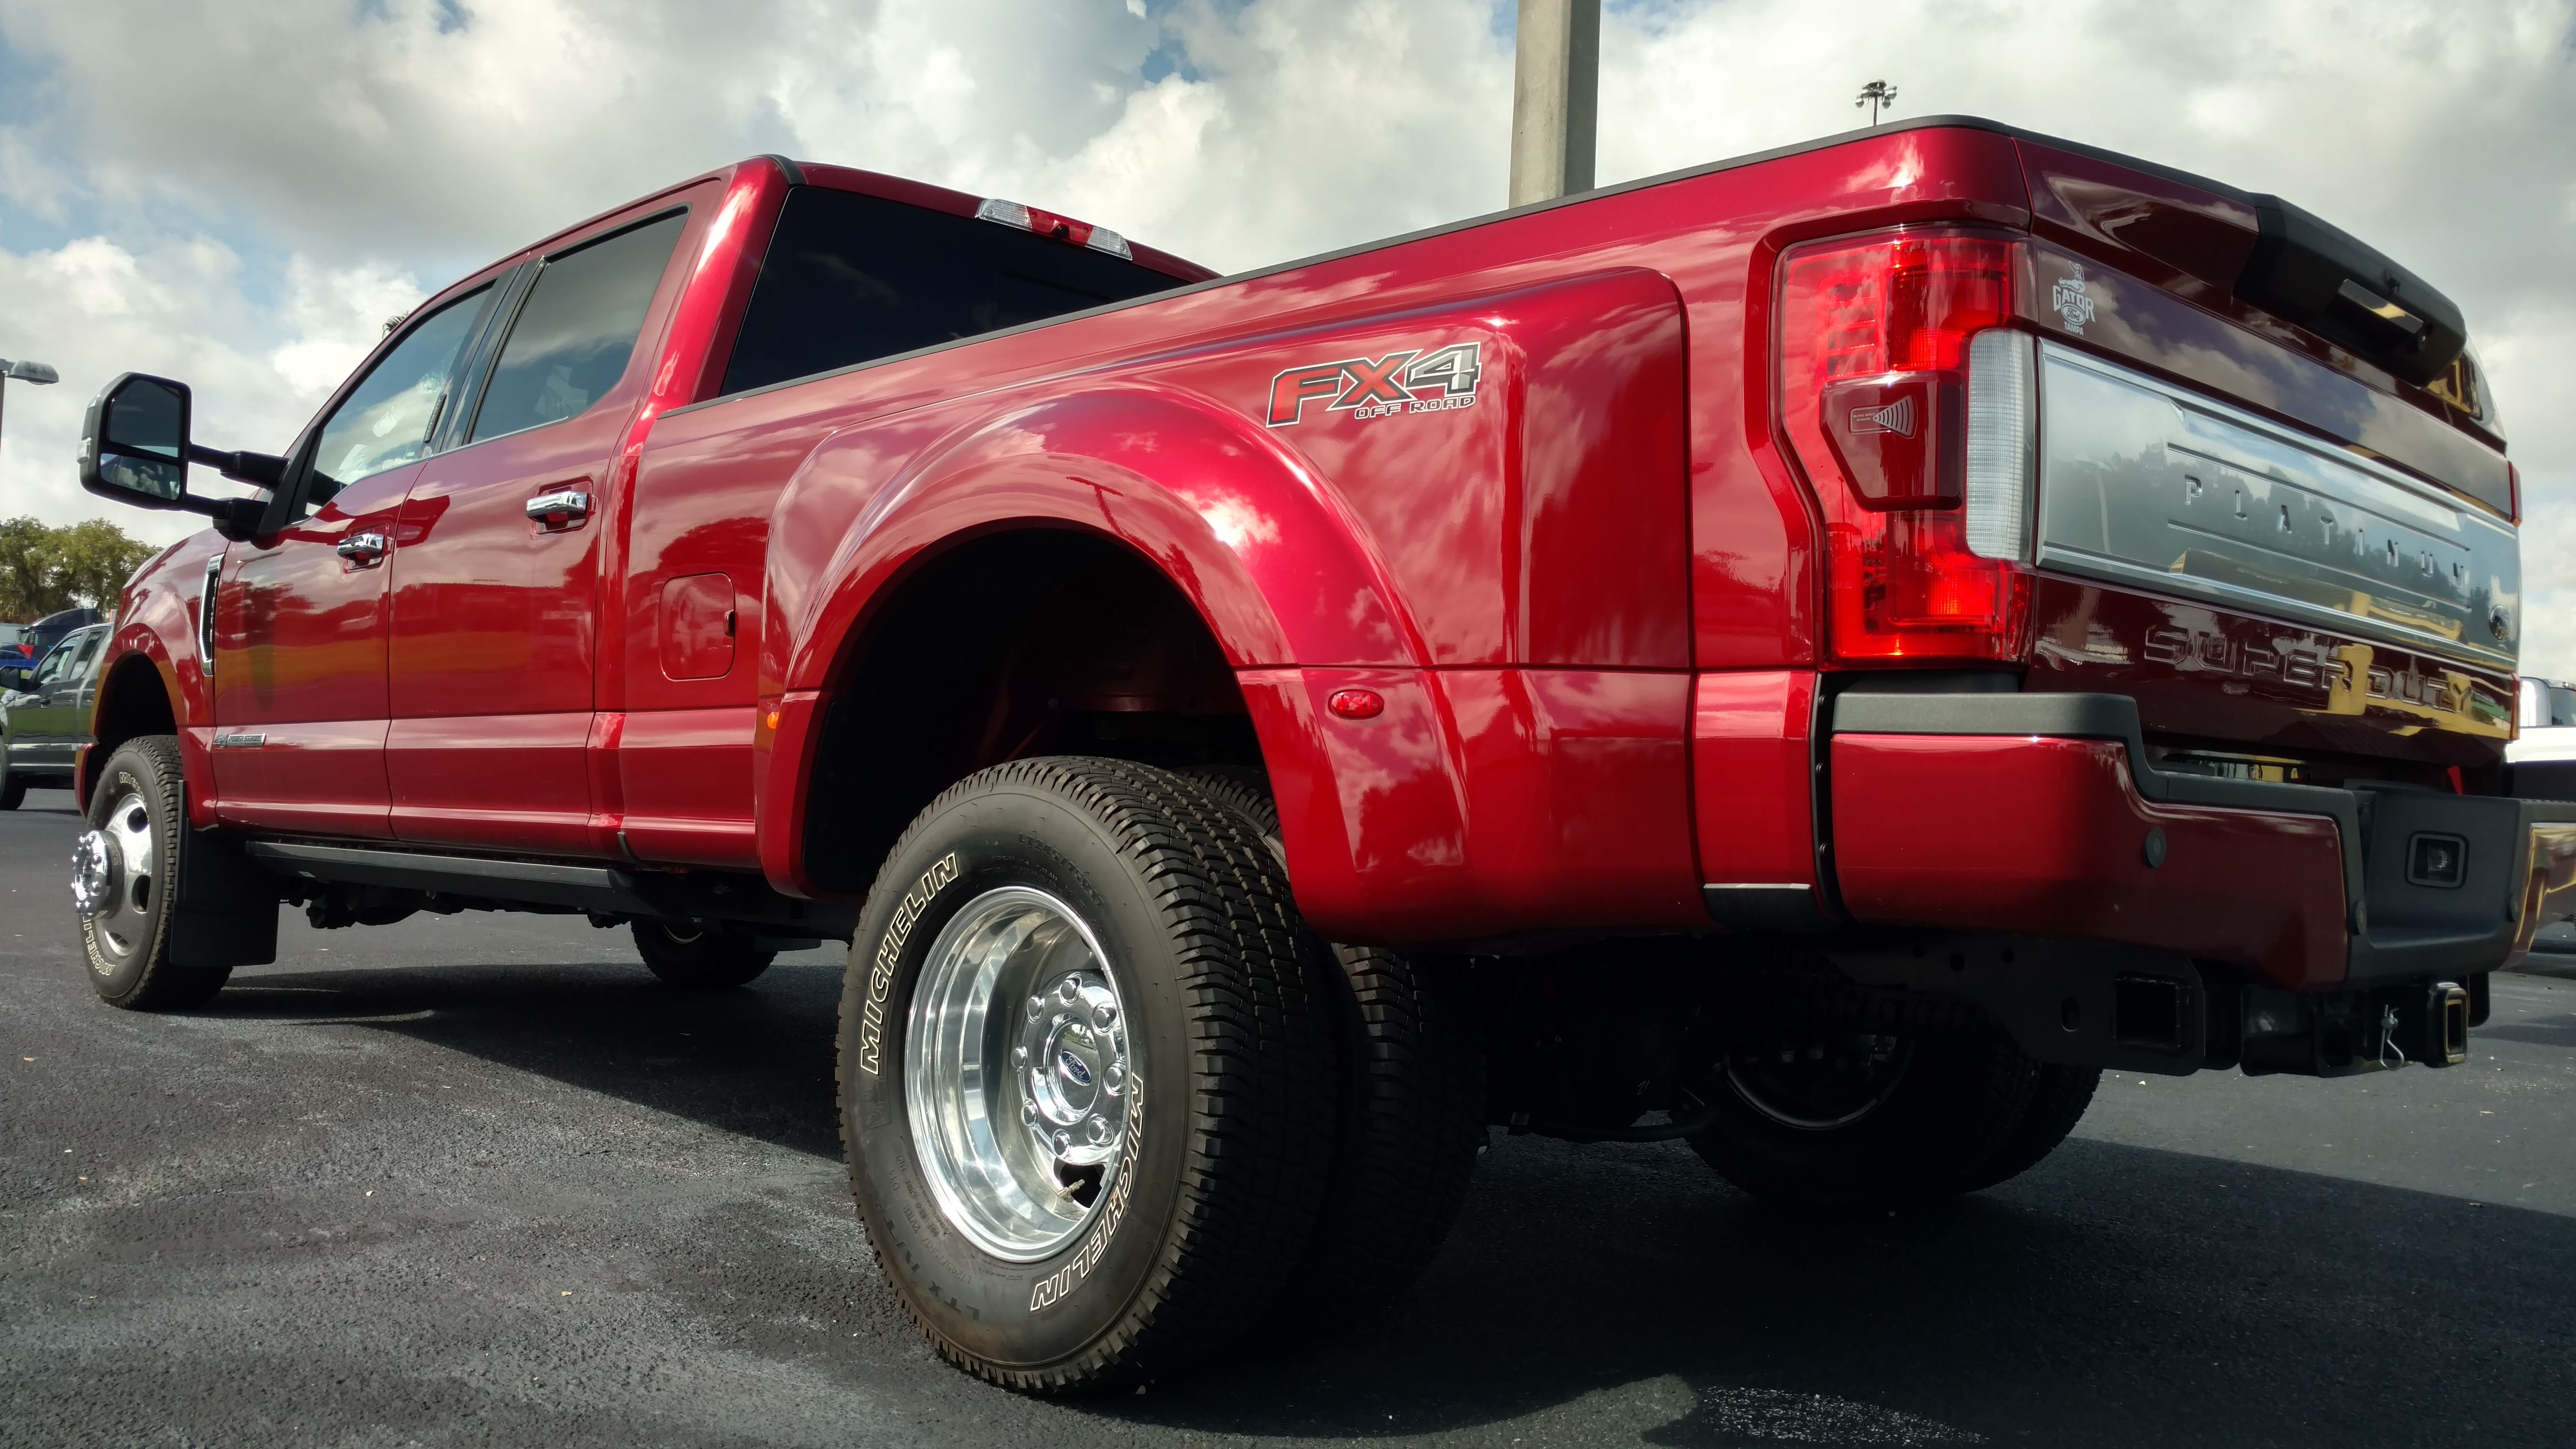 f 350 dually platinum in ruby red [ 5344 x 3006 Pixel ]